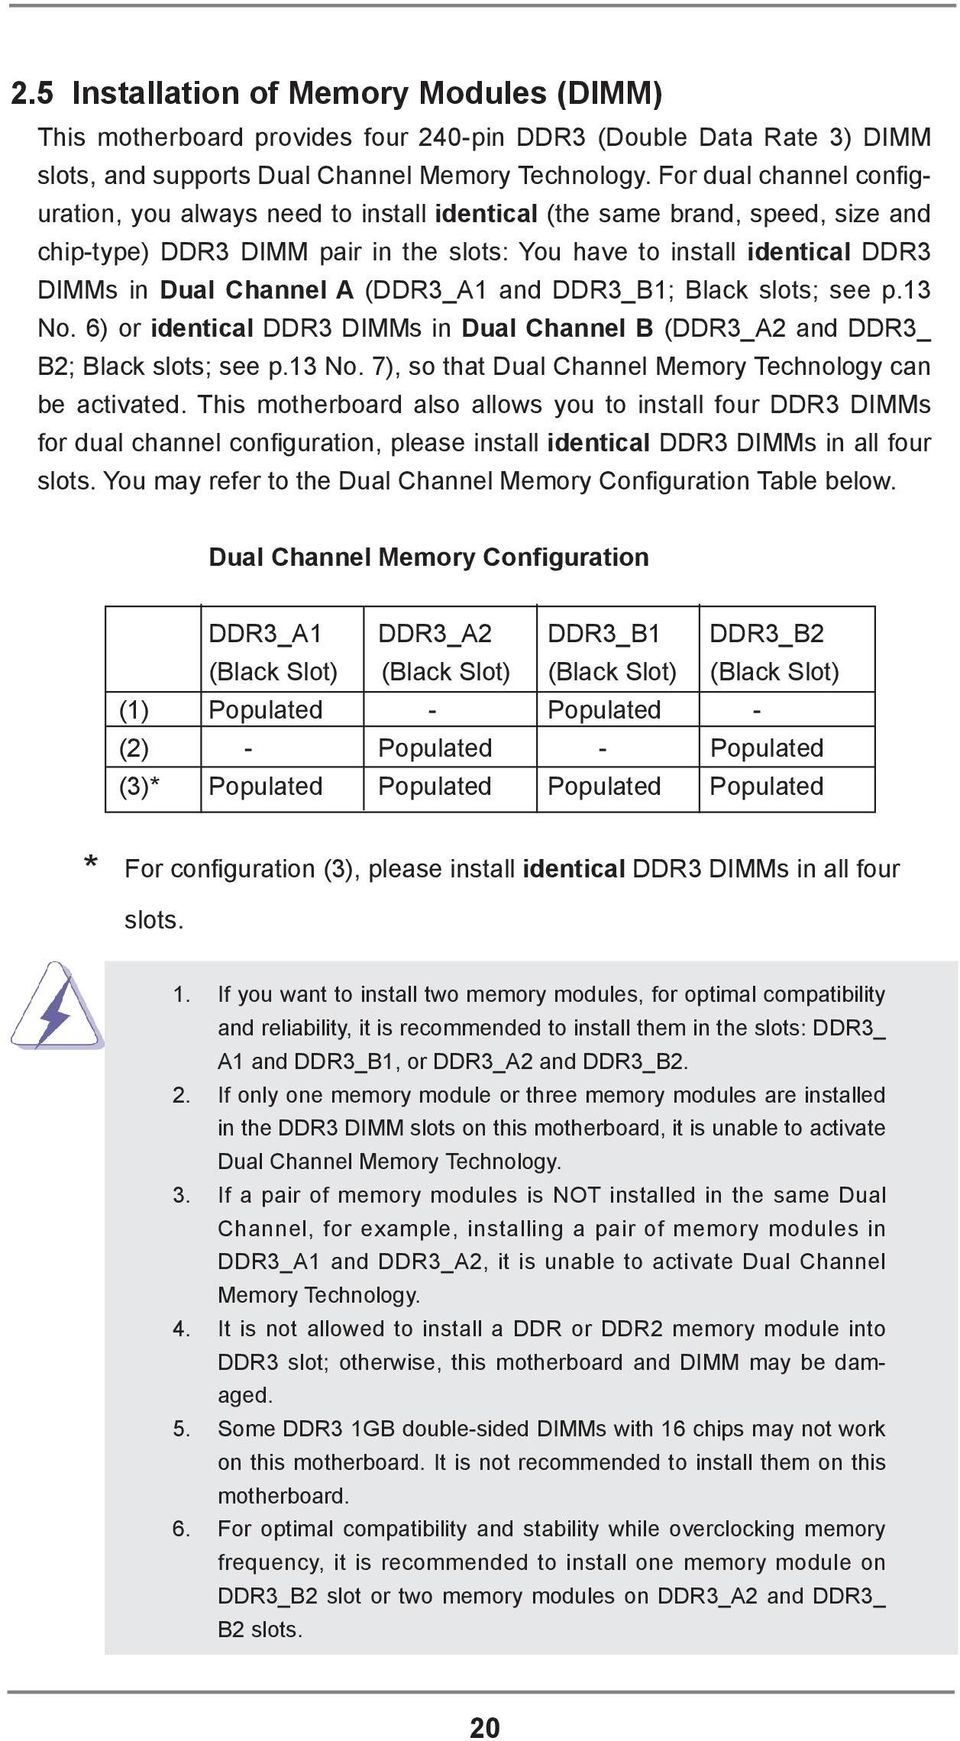 (DDR3_A1 and DDR3_B1; Black slots; see p.13 No. 6) or identical DDR3 DIMMs in Dual Channel B (DDR3_A2 and DDR3_ B2; Black slots; see p.13 No. 7), so that Dual Channel Memory Technology can be activated.